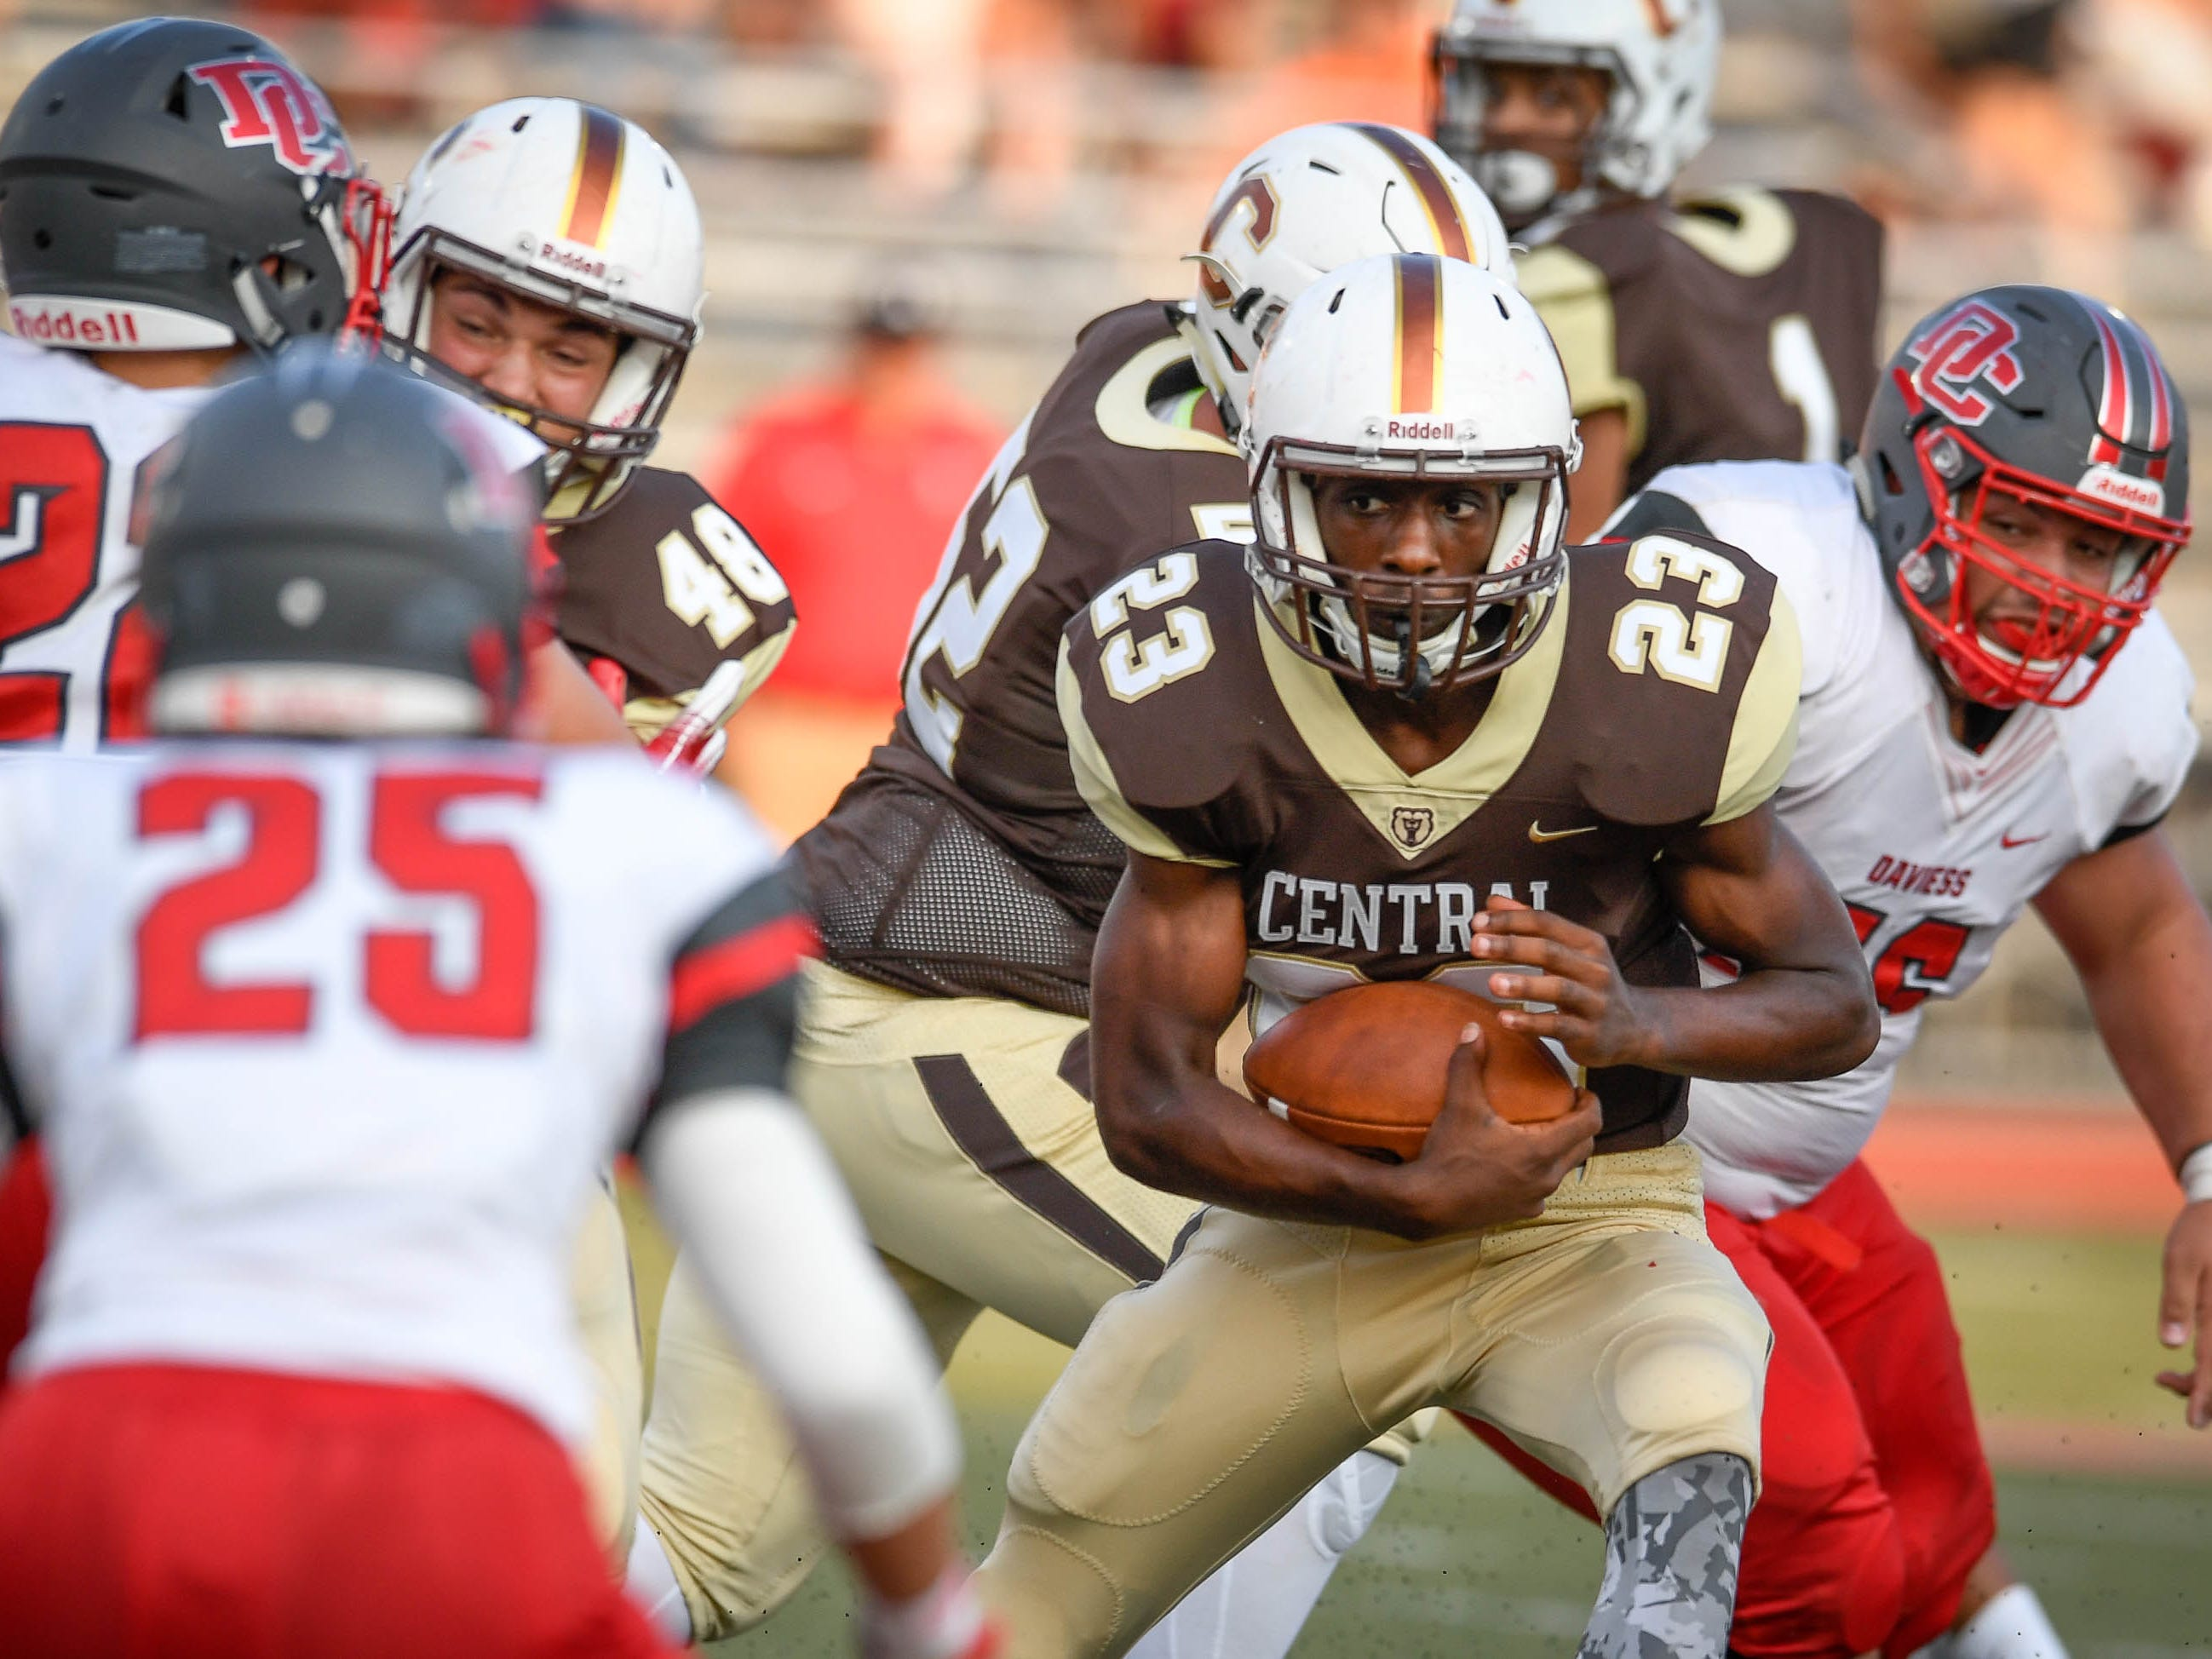 Central's Abayohmi Thompson (23) looks for yards late in the fourth quarter as the Daviess County Panthers play the Evansville Central Bears at the Border Bowl played at Enlow Field in Evansville Saturday, August 25, 2018.